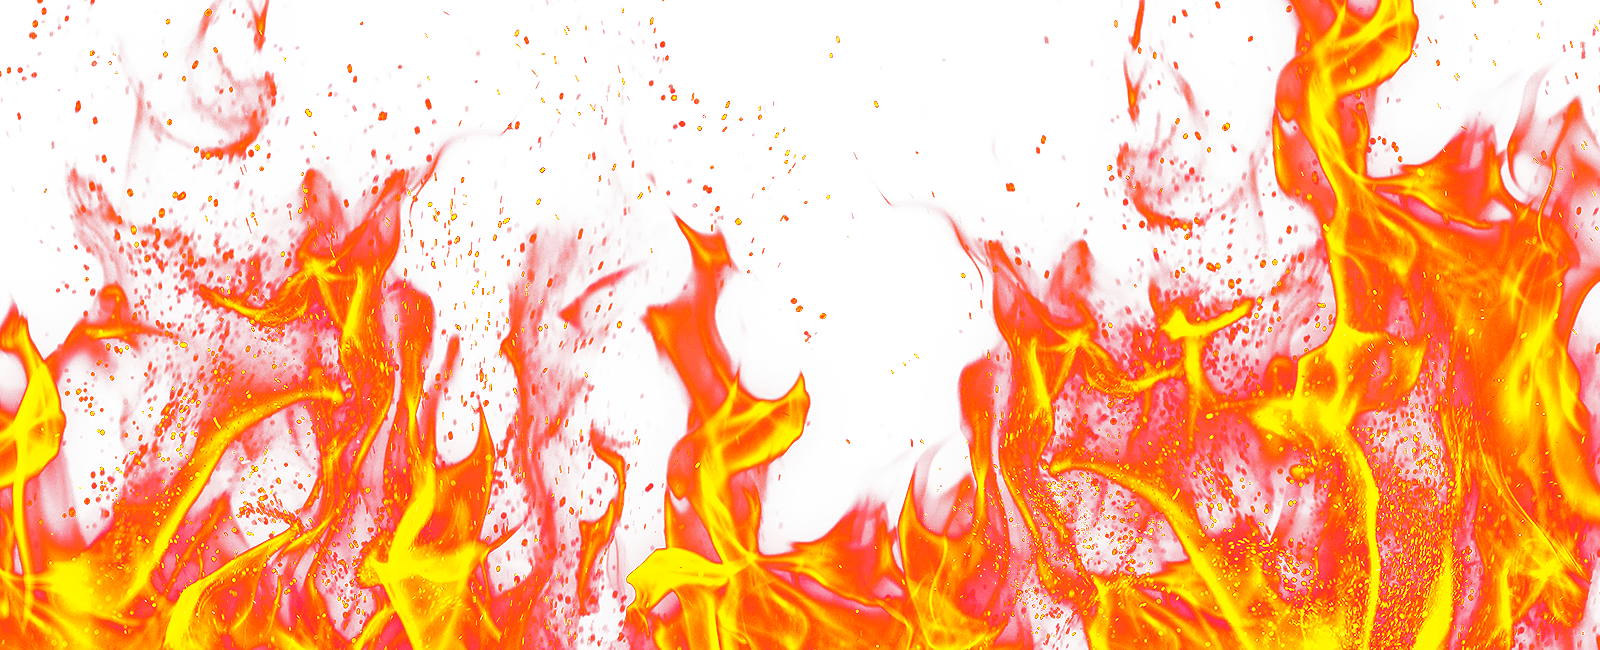 Fire png transparent. Images free icons and